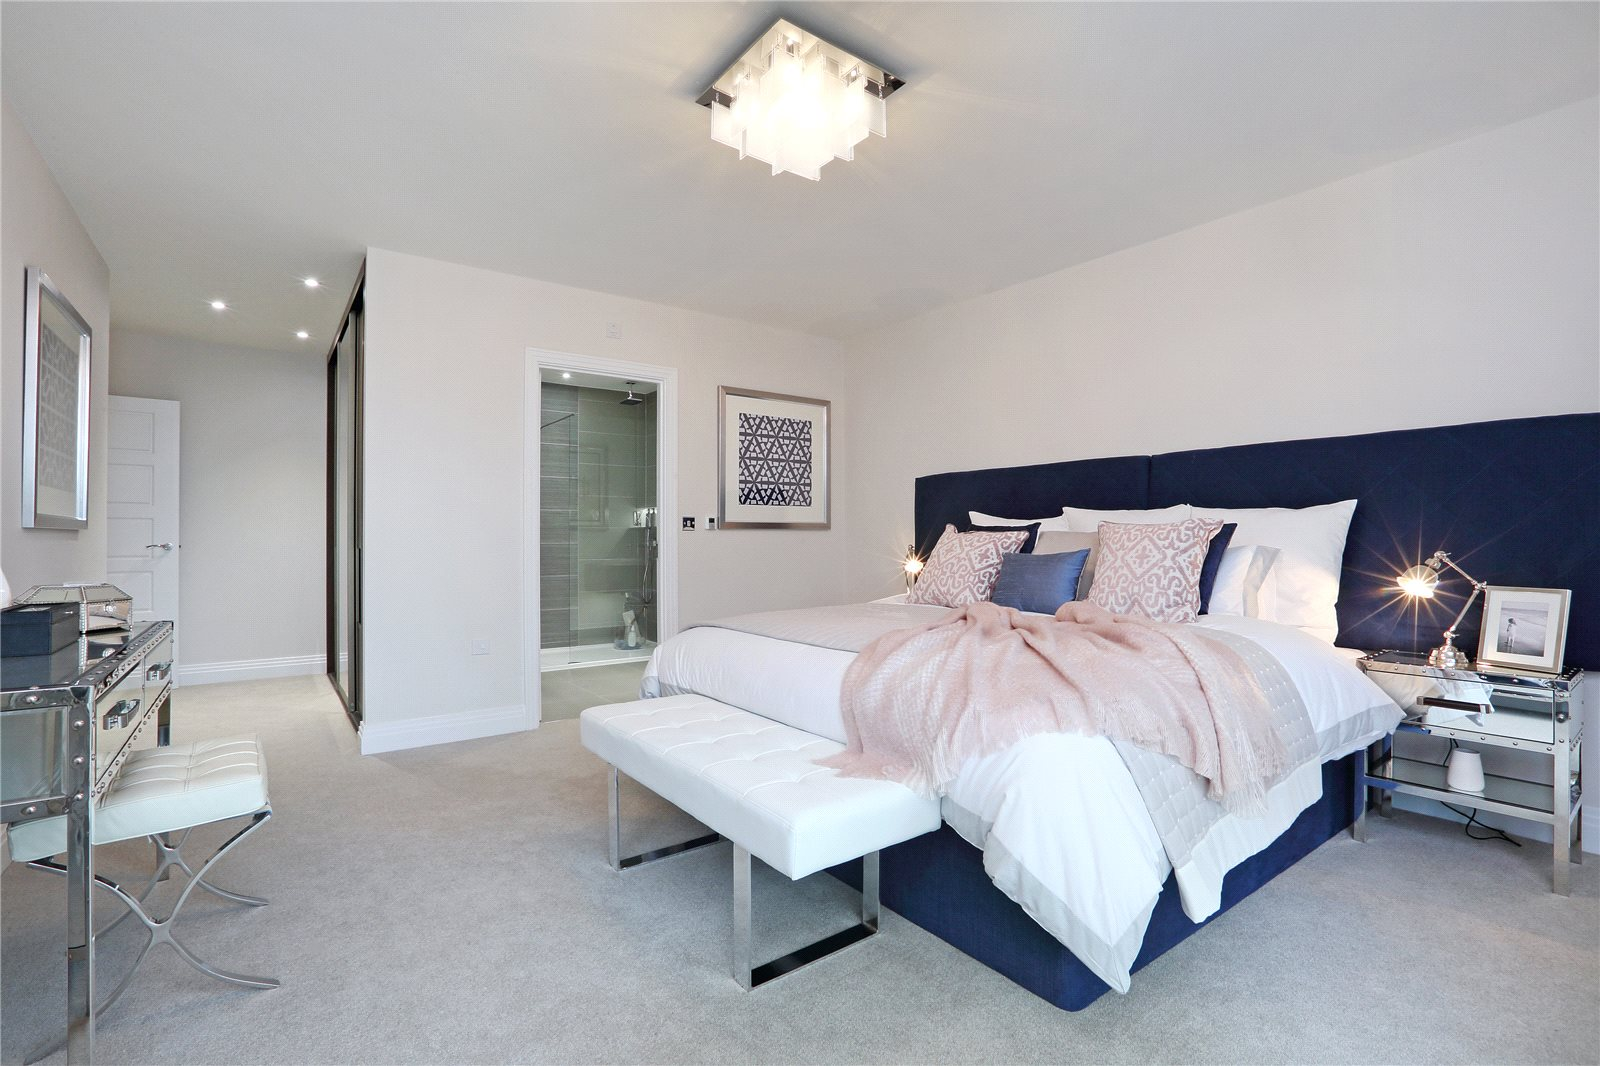 Additional photo for property listing at South Park Crescent, Gerrards Cross, Buckinghamshire, SL9 Gerrards Cross, 英格兰